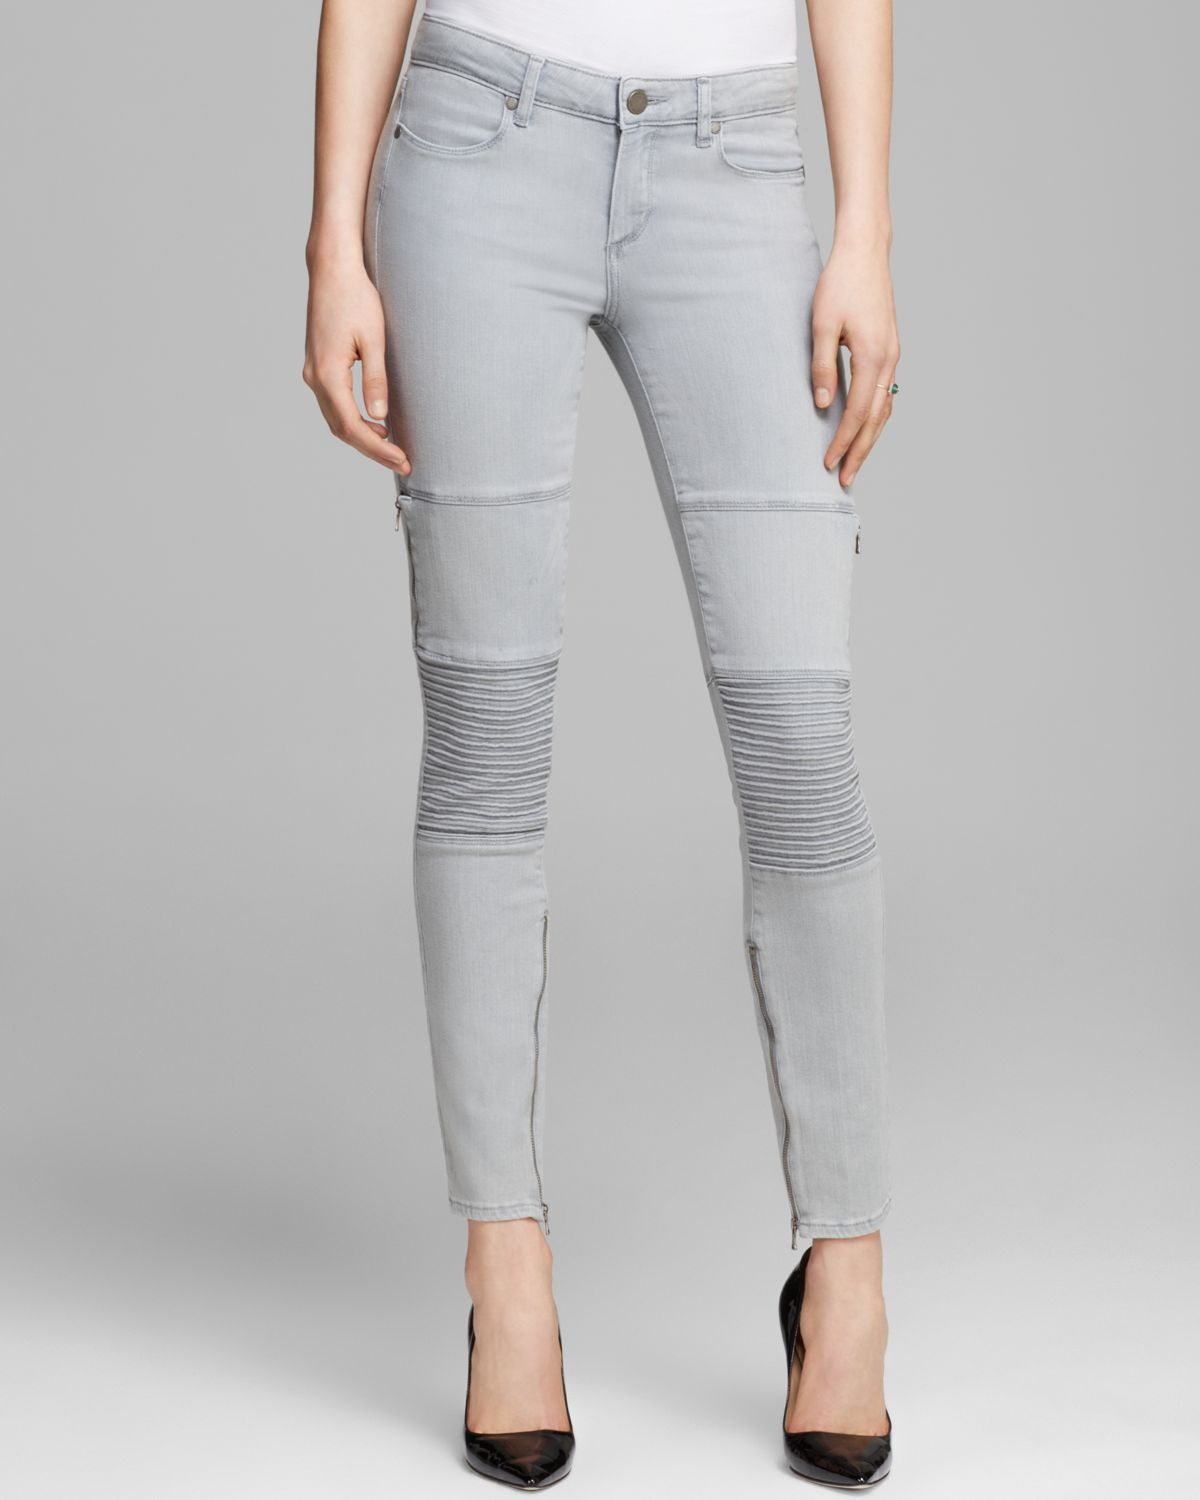 paige jeans demi ultra skinny in montauk grey in gray lyst. Black Bedroom Furniture Sets. Home Design Ideas